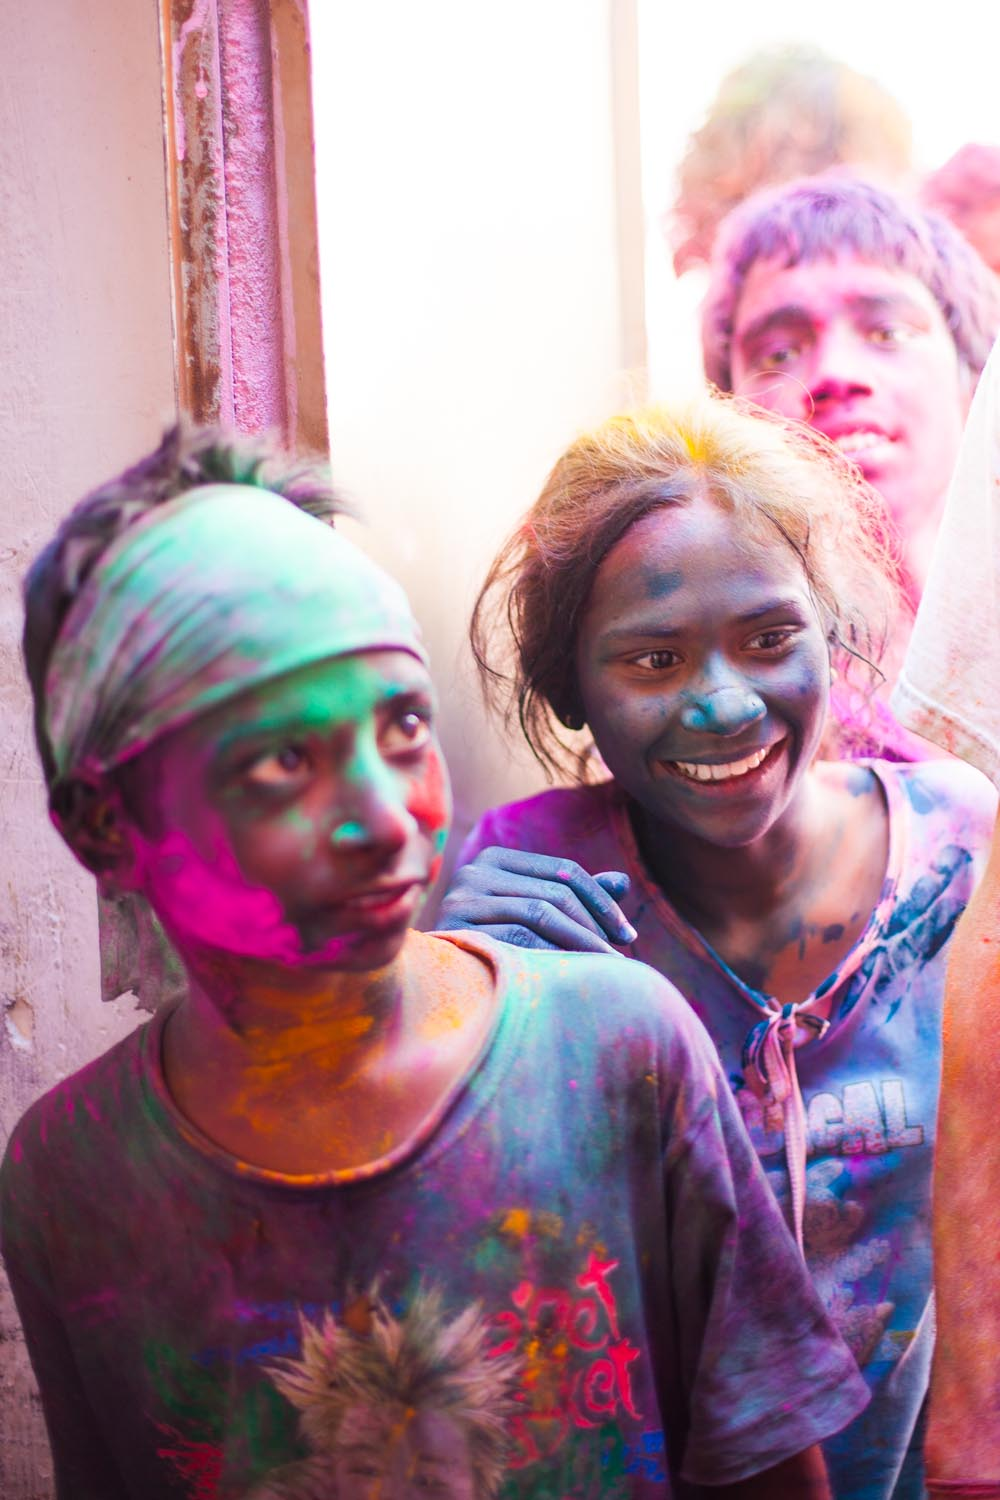 Holi is a day of community, and a day to forgive and move on from the past. For some it is the mark of a new year.